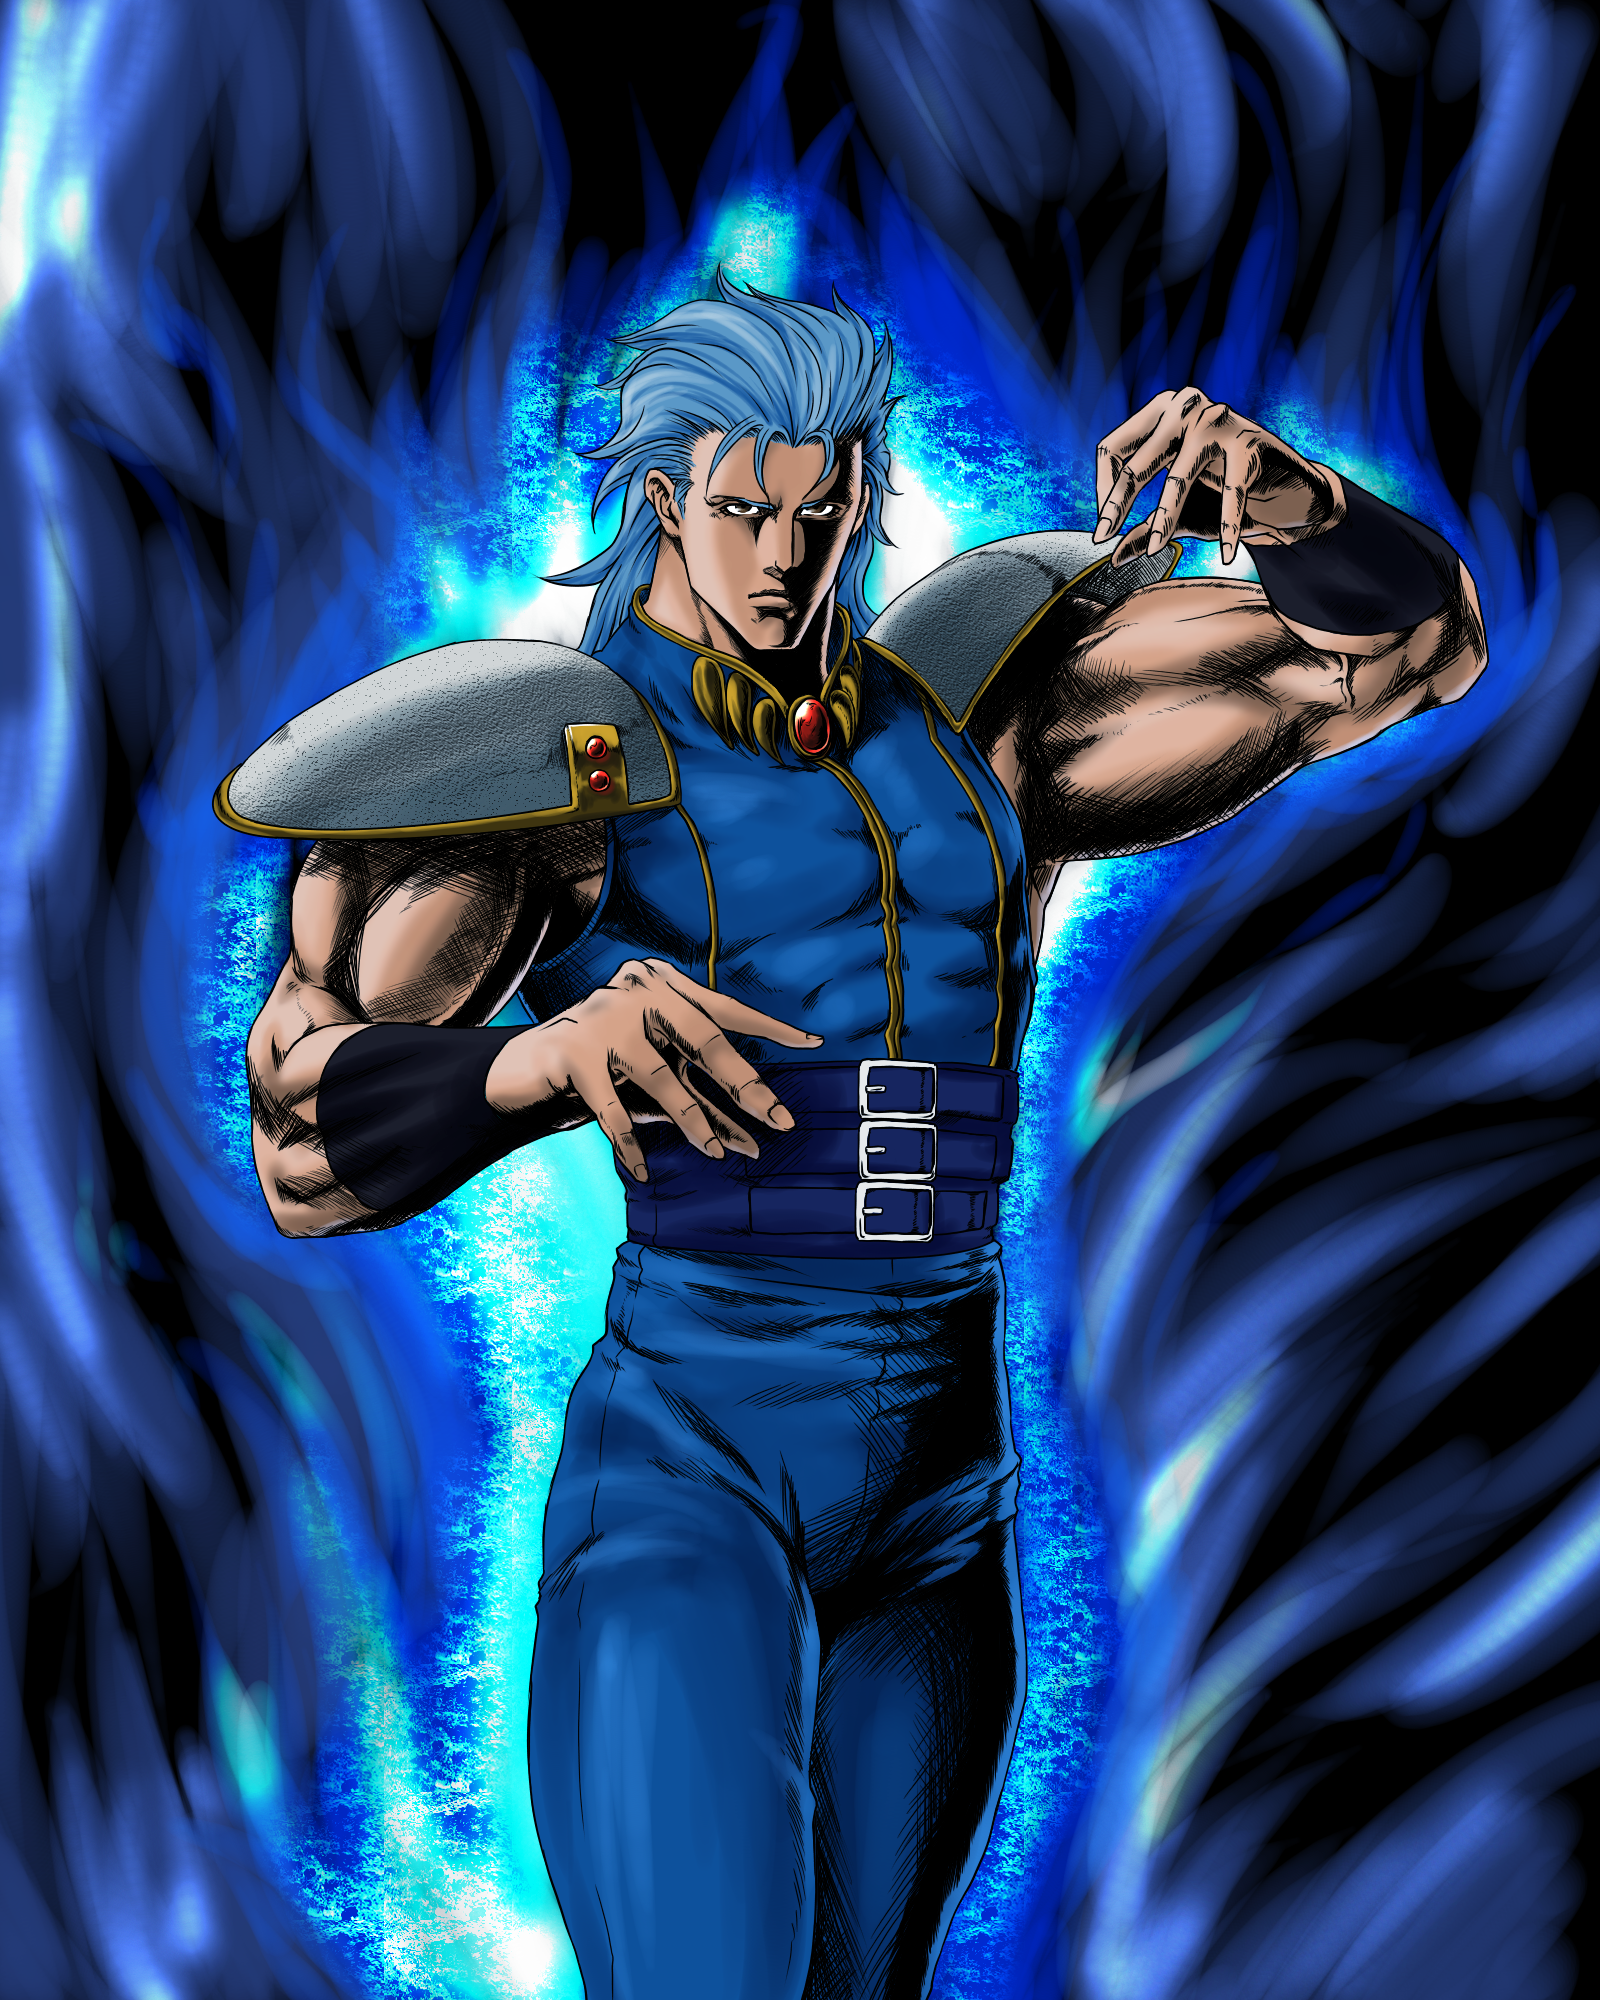 Pin By Jeff Hager On Hokuto No Ken Or Fist Of The North